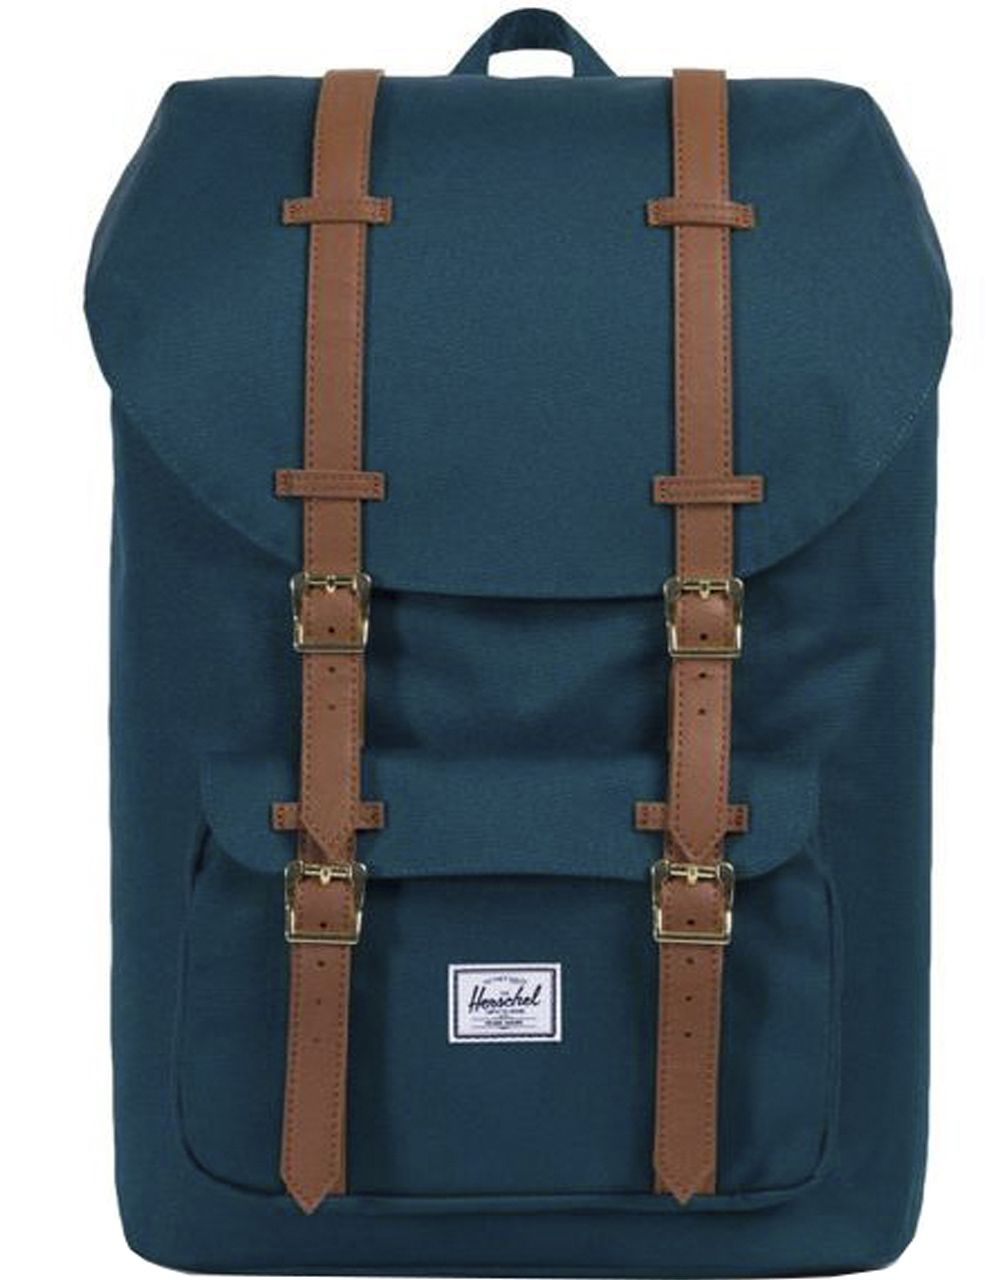 Рюкзак HERSCHEL LITTLE AMERICA  Deep Teal/Tan Synthetic Leather